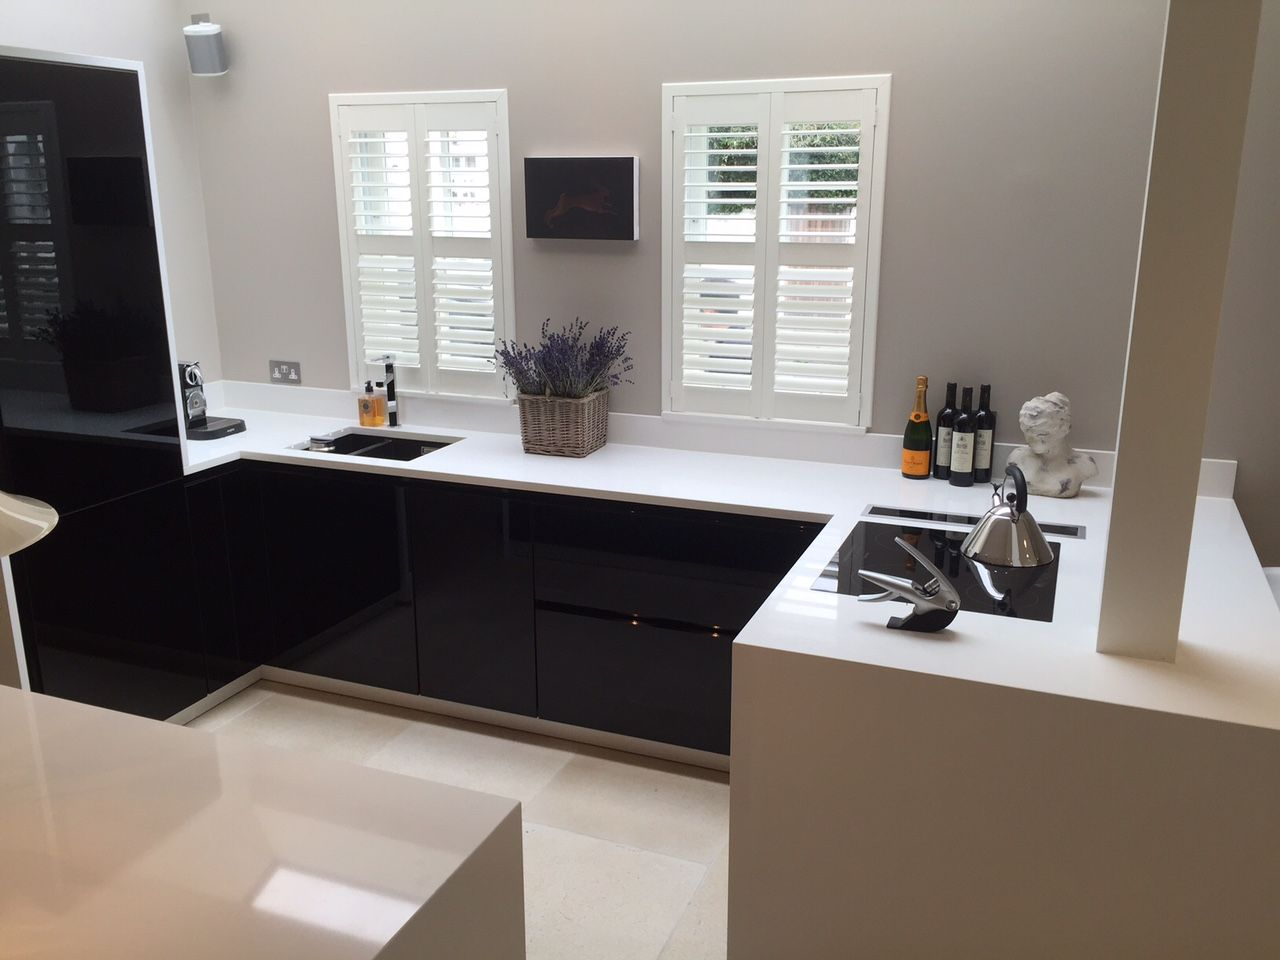 Pure White Quartz Kitchen Worktops With End Panel By The Marble